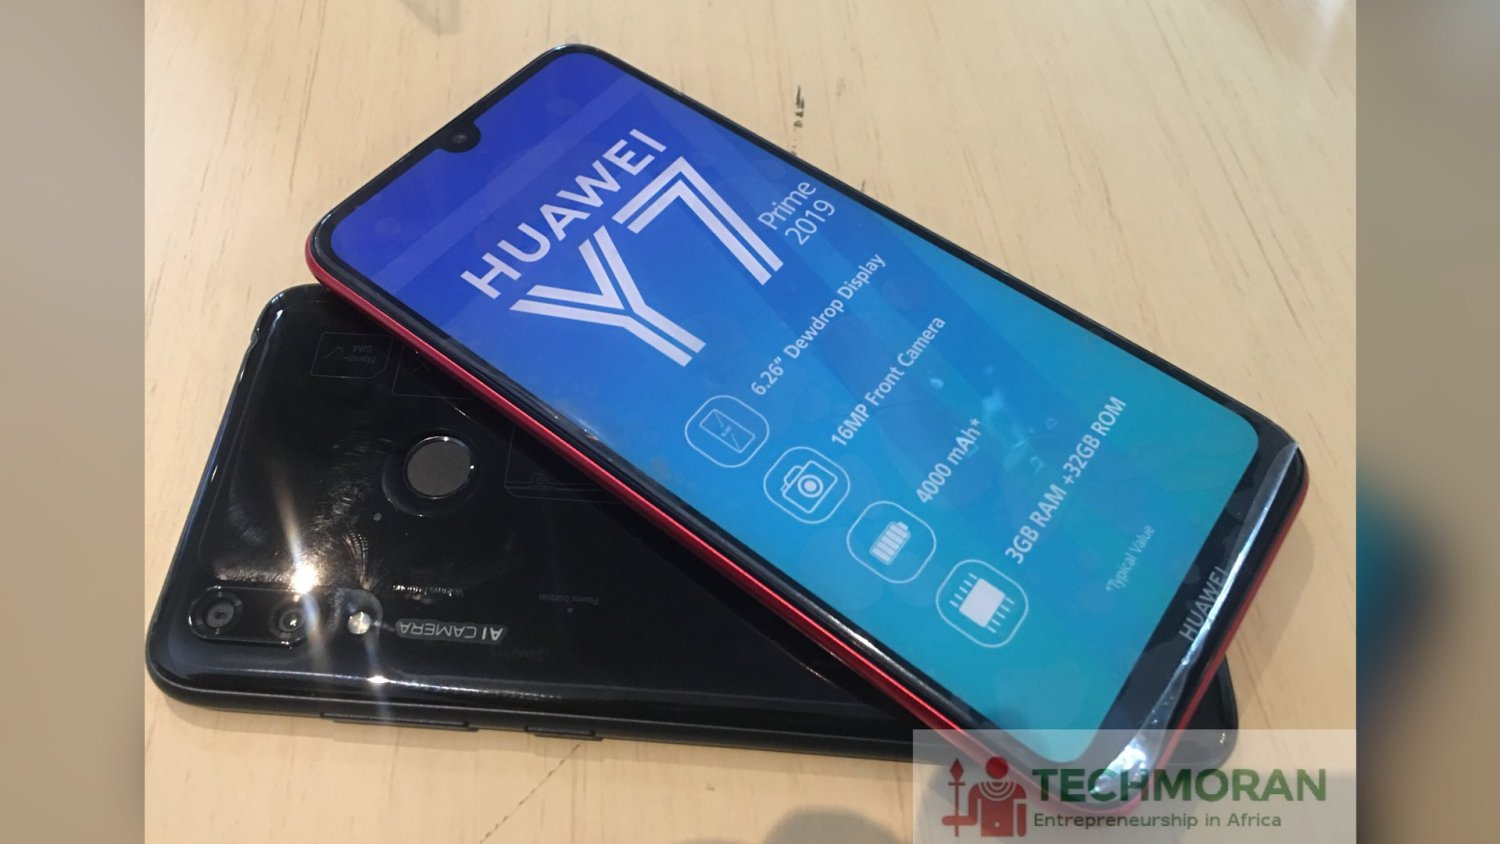 Huawei Mobile launches Y7 Prime 2019 retailing at Kshs